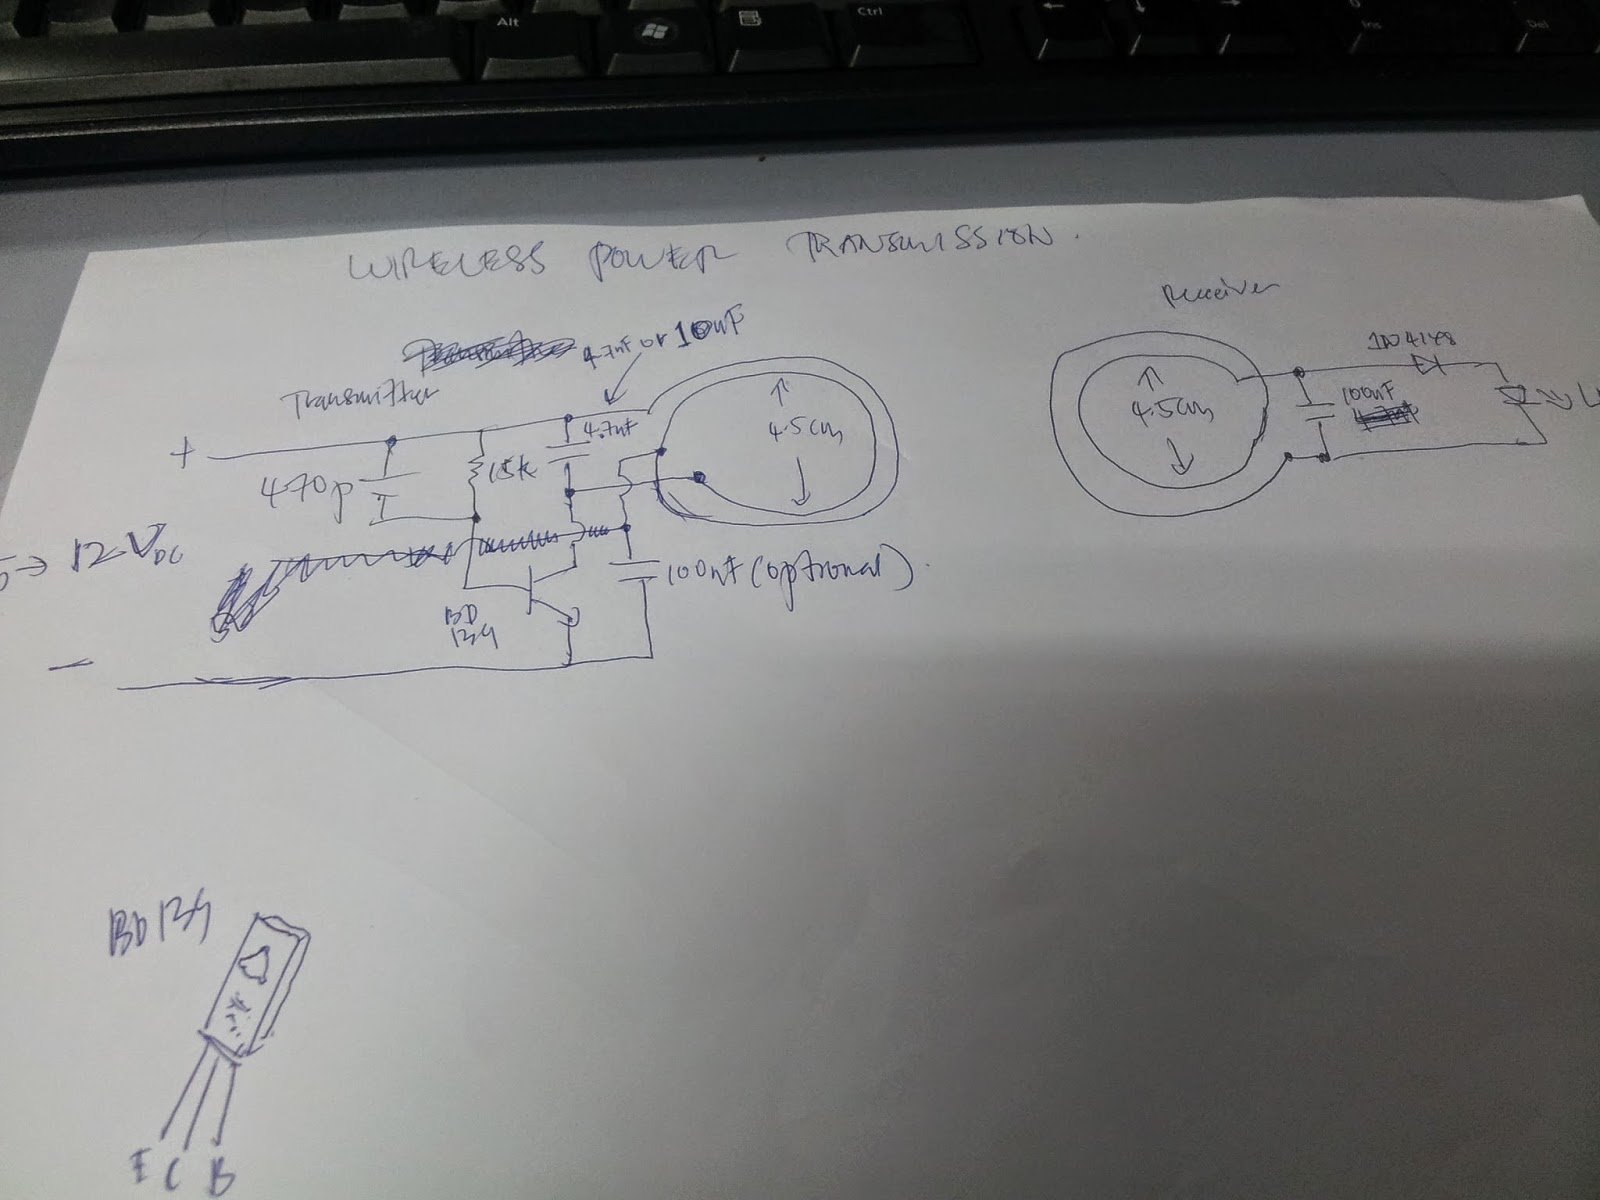 Power Booster Circuit Diagrams Explained Electronic Circuit Projects